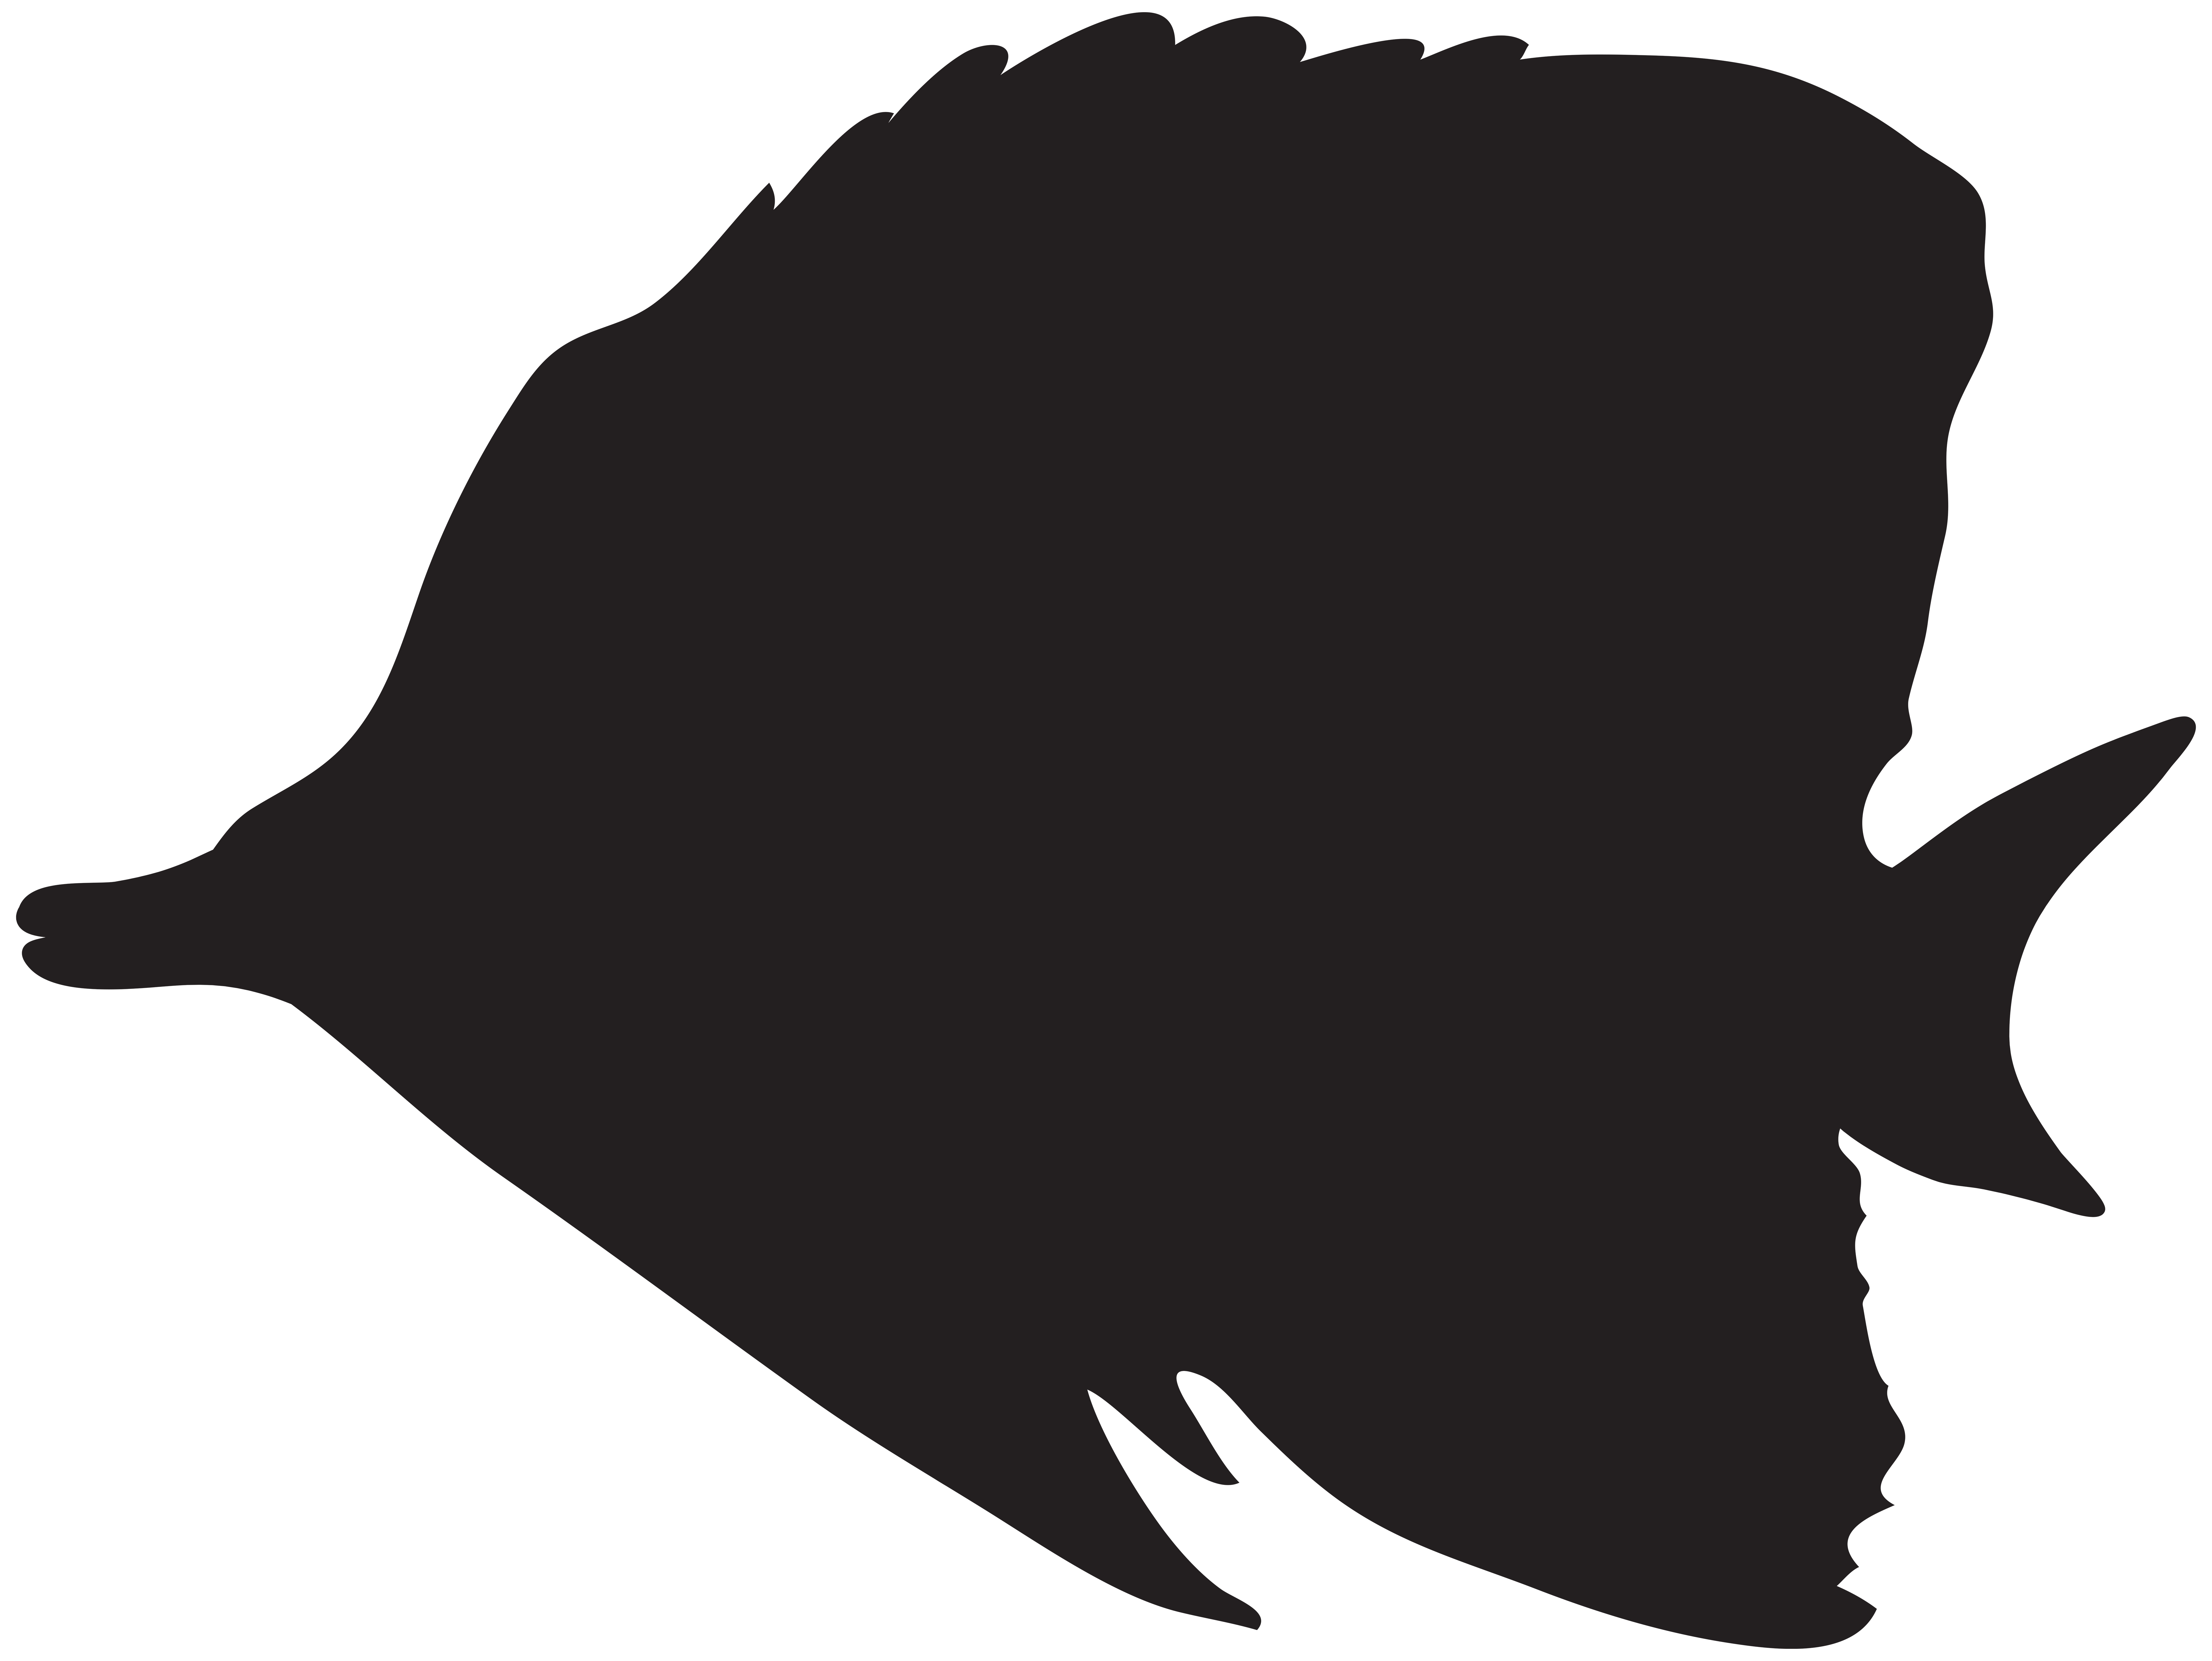 svg download Bass Fishing Silhouette at GetDrawings